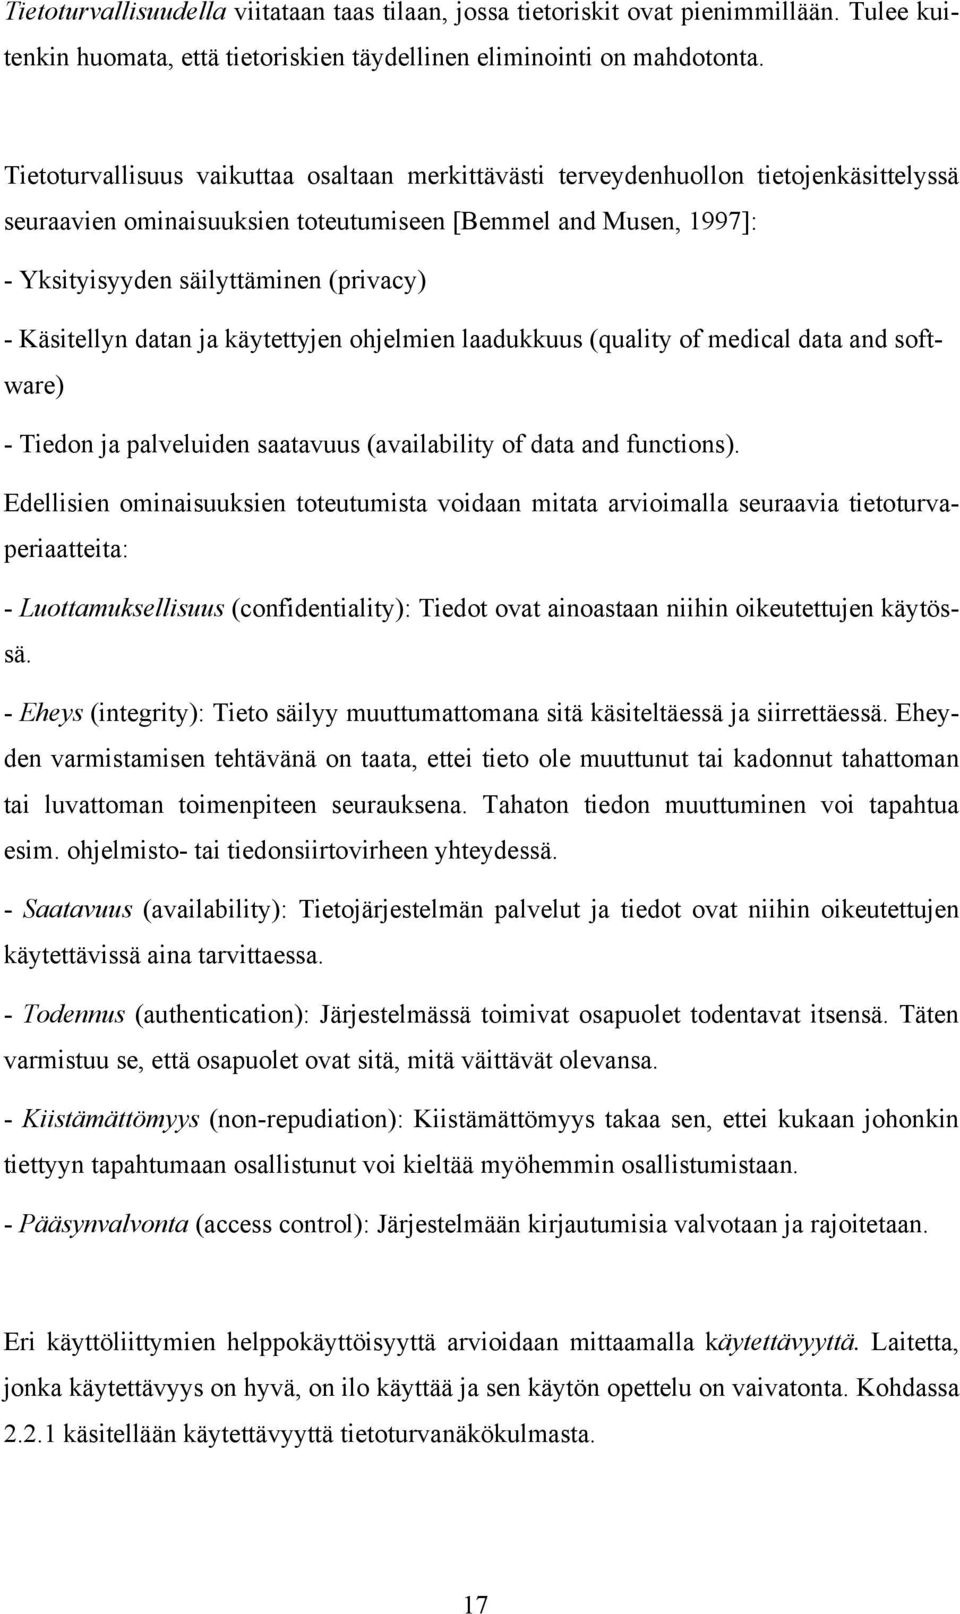 Käsitellyn datan ja käytettyjen ohjelmien laadukkuus (quality of medical data and software) - Tiedon ja palveluiden saatavuus (availability of data and functions).